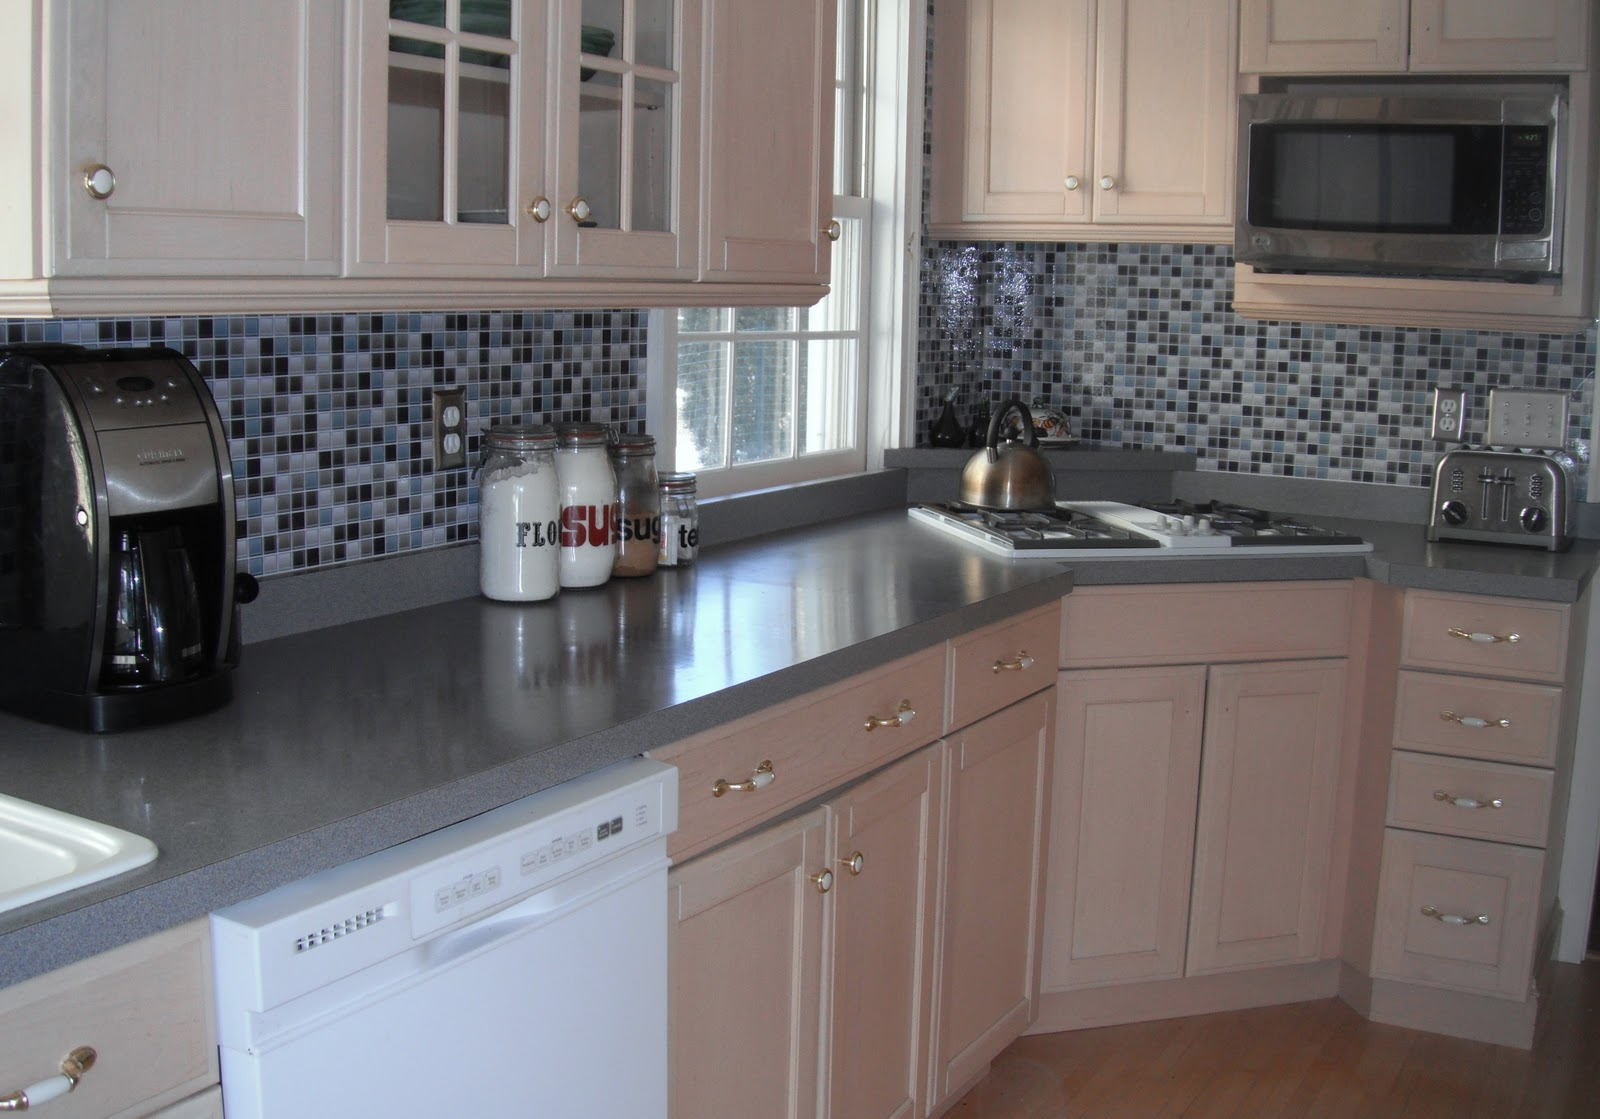 Uncategorized Kitchen Decals For Backsplash the lovely residence big back splash i hope you are sitting down reading this blog because am about to shock your socks off our backplash is a decal no will not get out of town